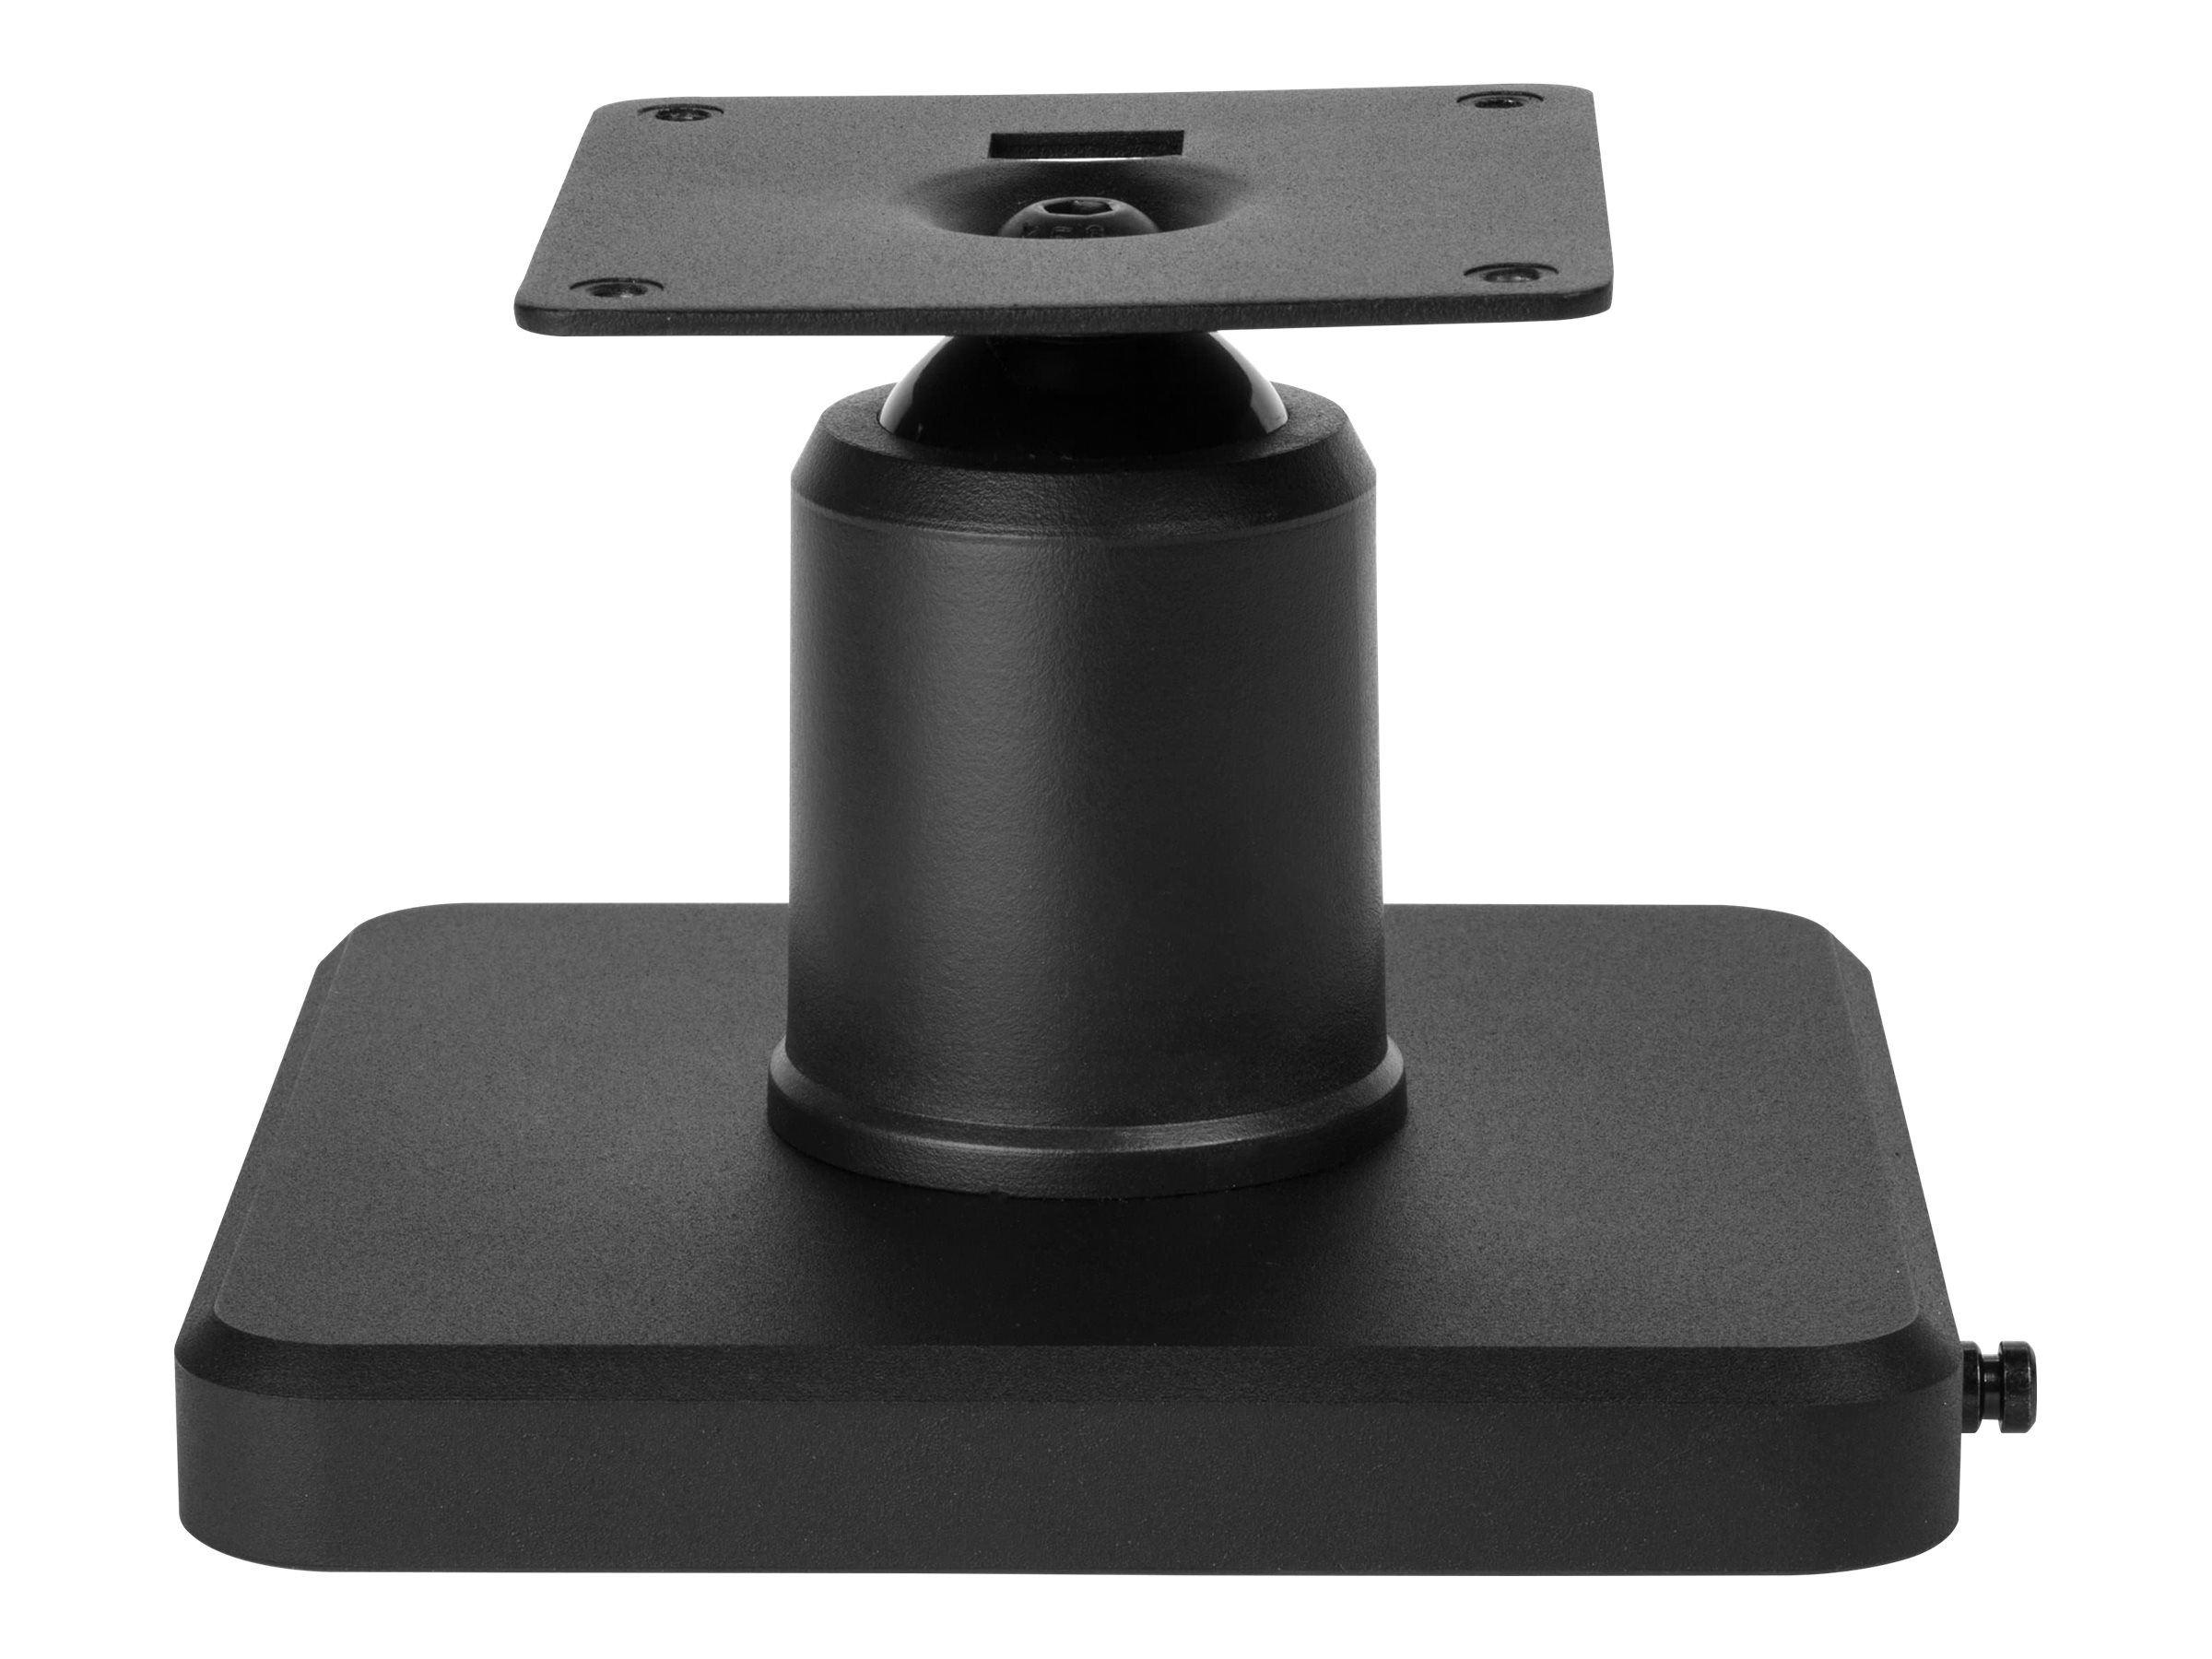 Kensington VESA Counter POS Kiosk Tablet Stand, K67833AM